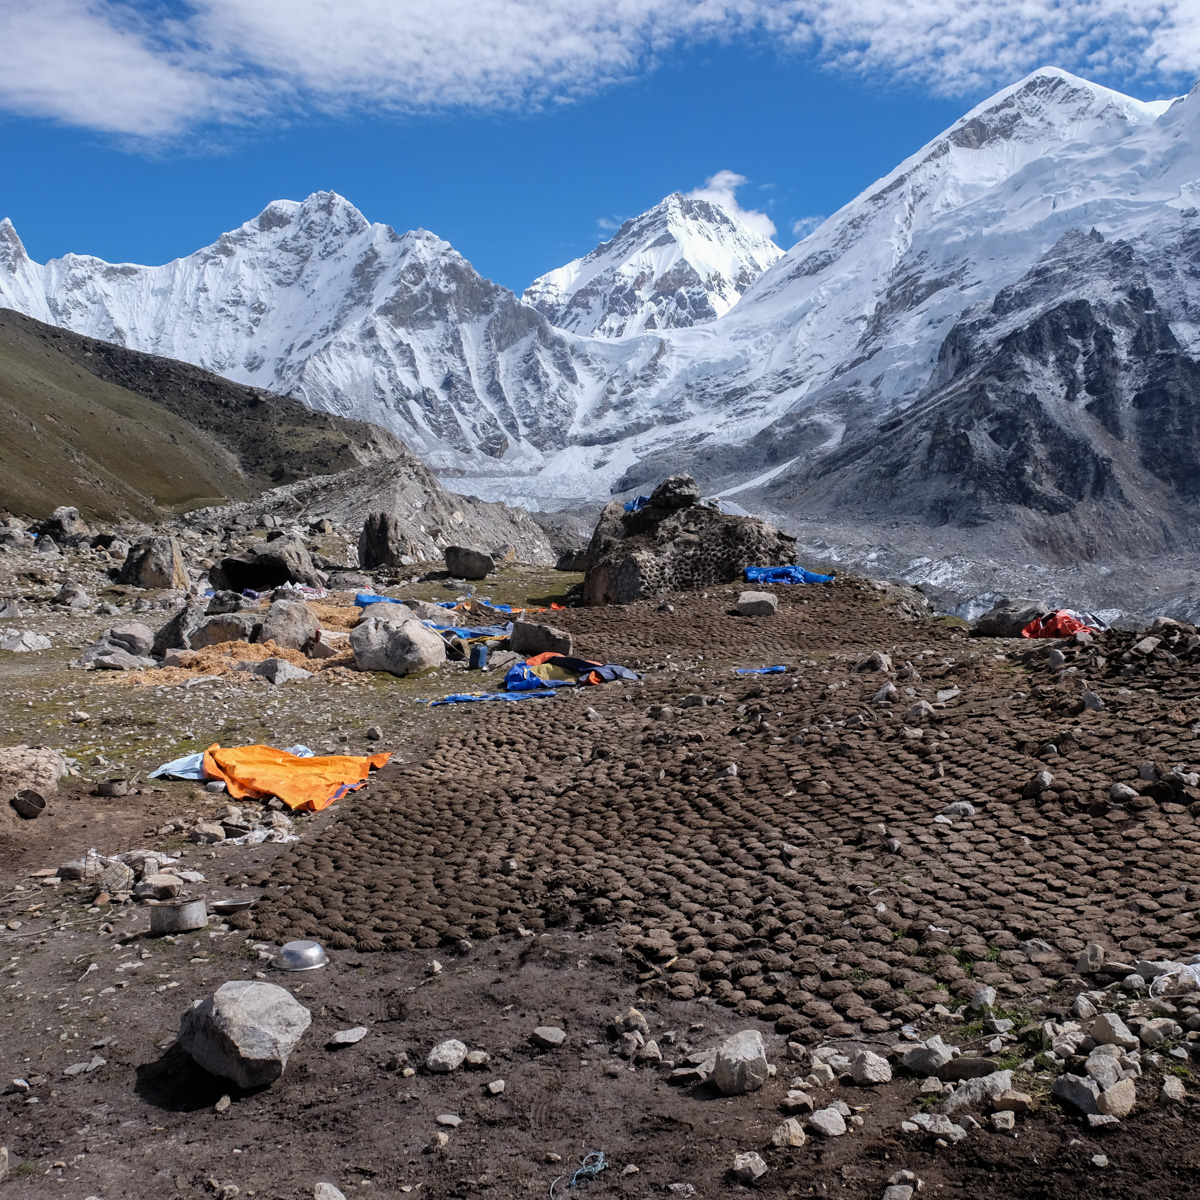 Kala Patthar & Gokyo, Everest 3 pass #3 24